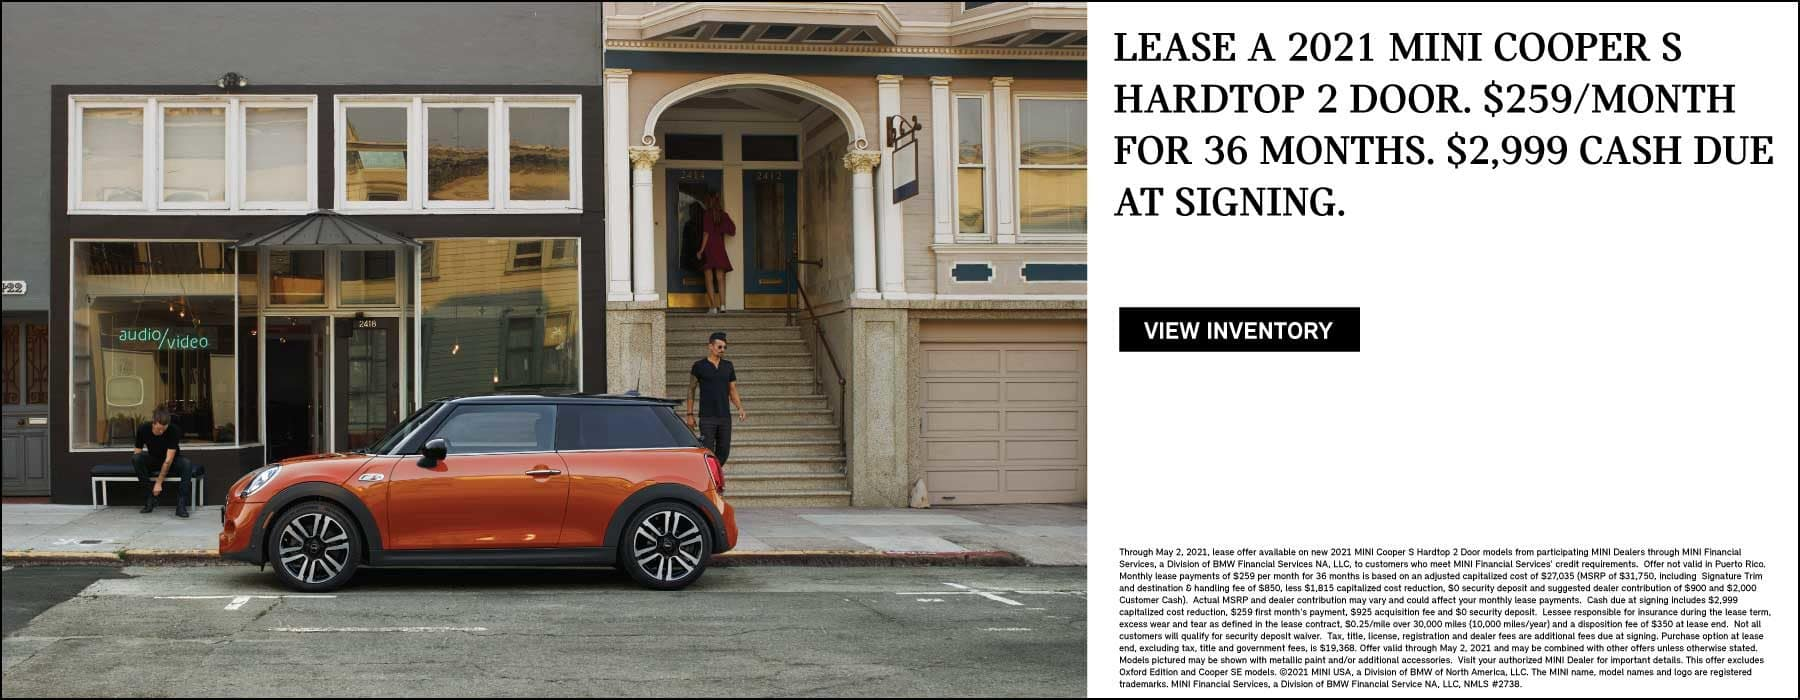 LEASE A 2021 MINI COOPER S HARDTOP 2 DOOR FOR $259 A MONTH FOR 36 MONTHS. $2,999 CASH DUE AT SIGNING. VIEW INVENTORY BUTTON.